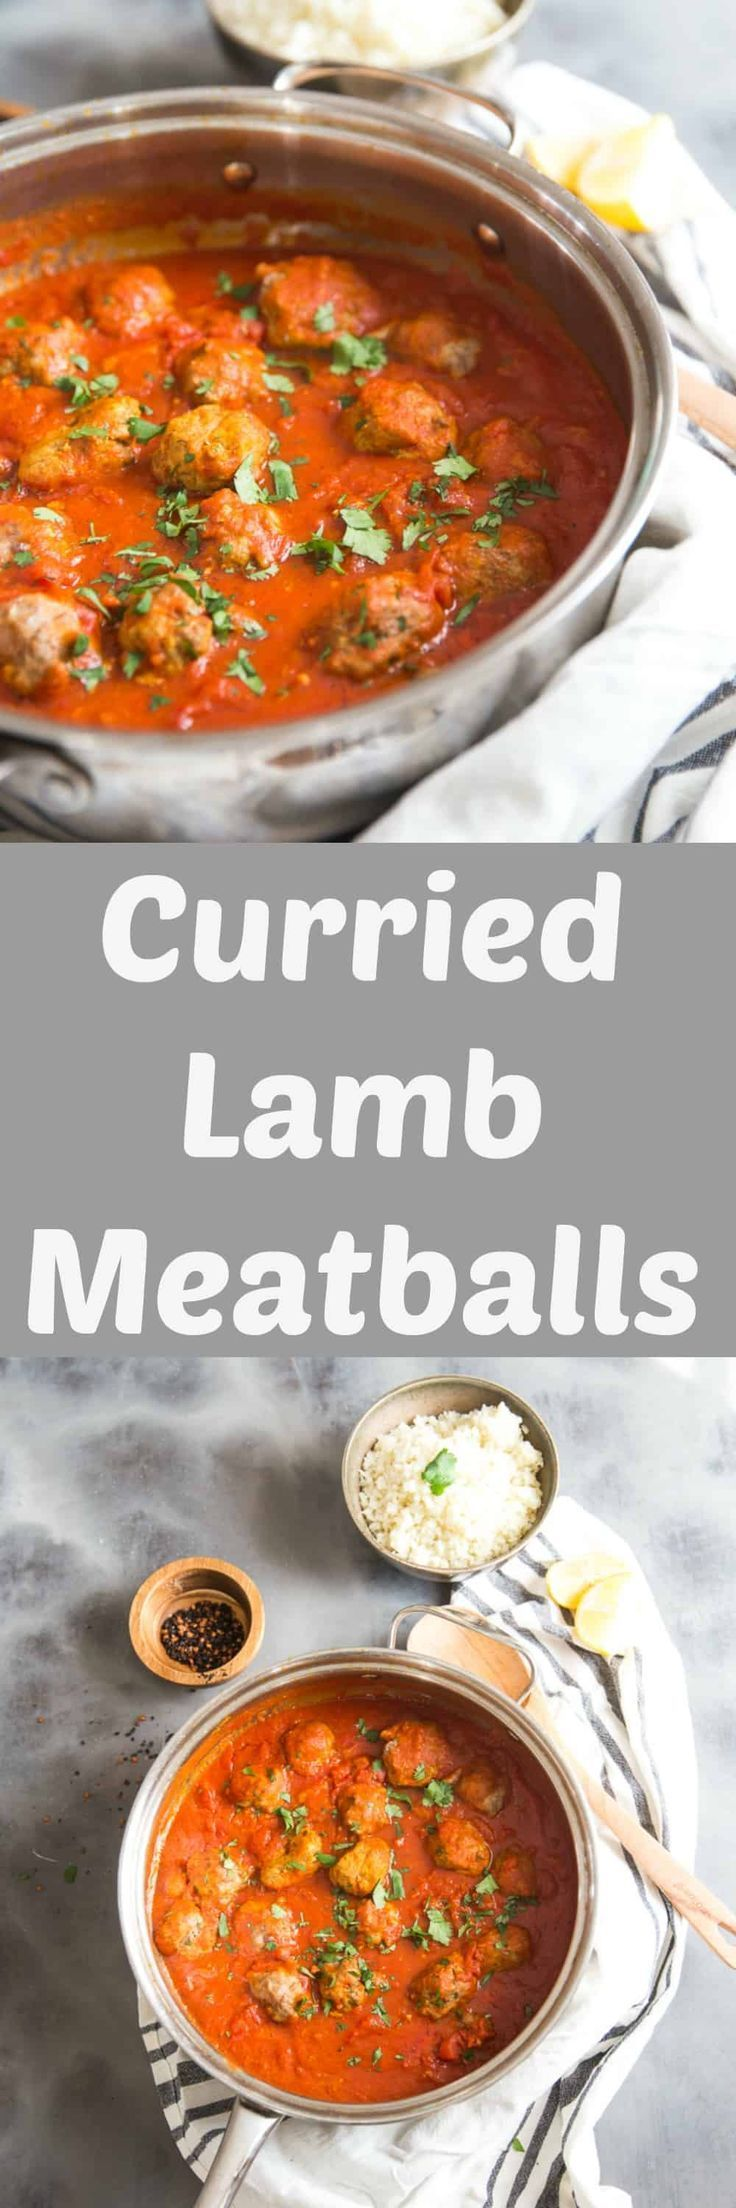 Lamb meatballs are a different kind of way to enjoy curry. The meatballs are made with lamb and turkey and seasoned with curry seasoning. The meatballsare simmered in a spiced tomato sauce to complete the meal! via @Lemonsforlulu